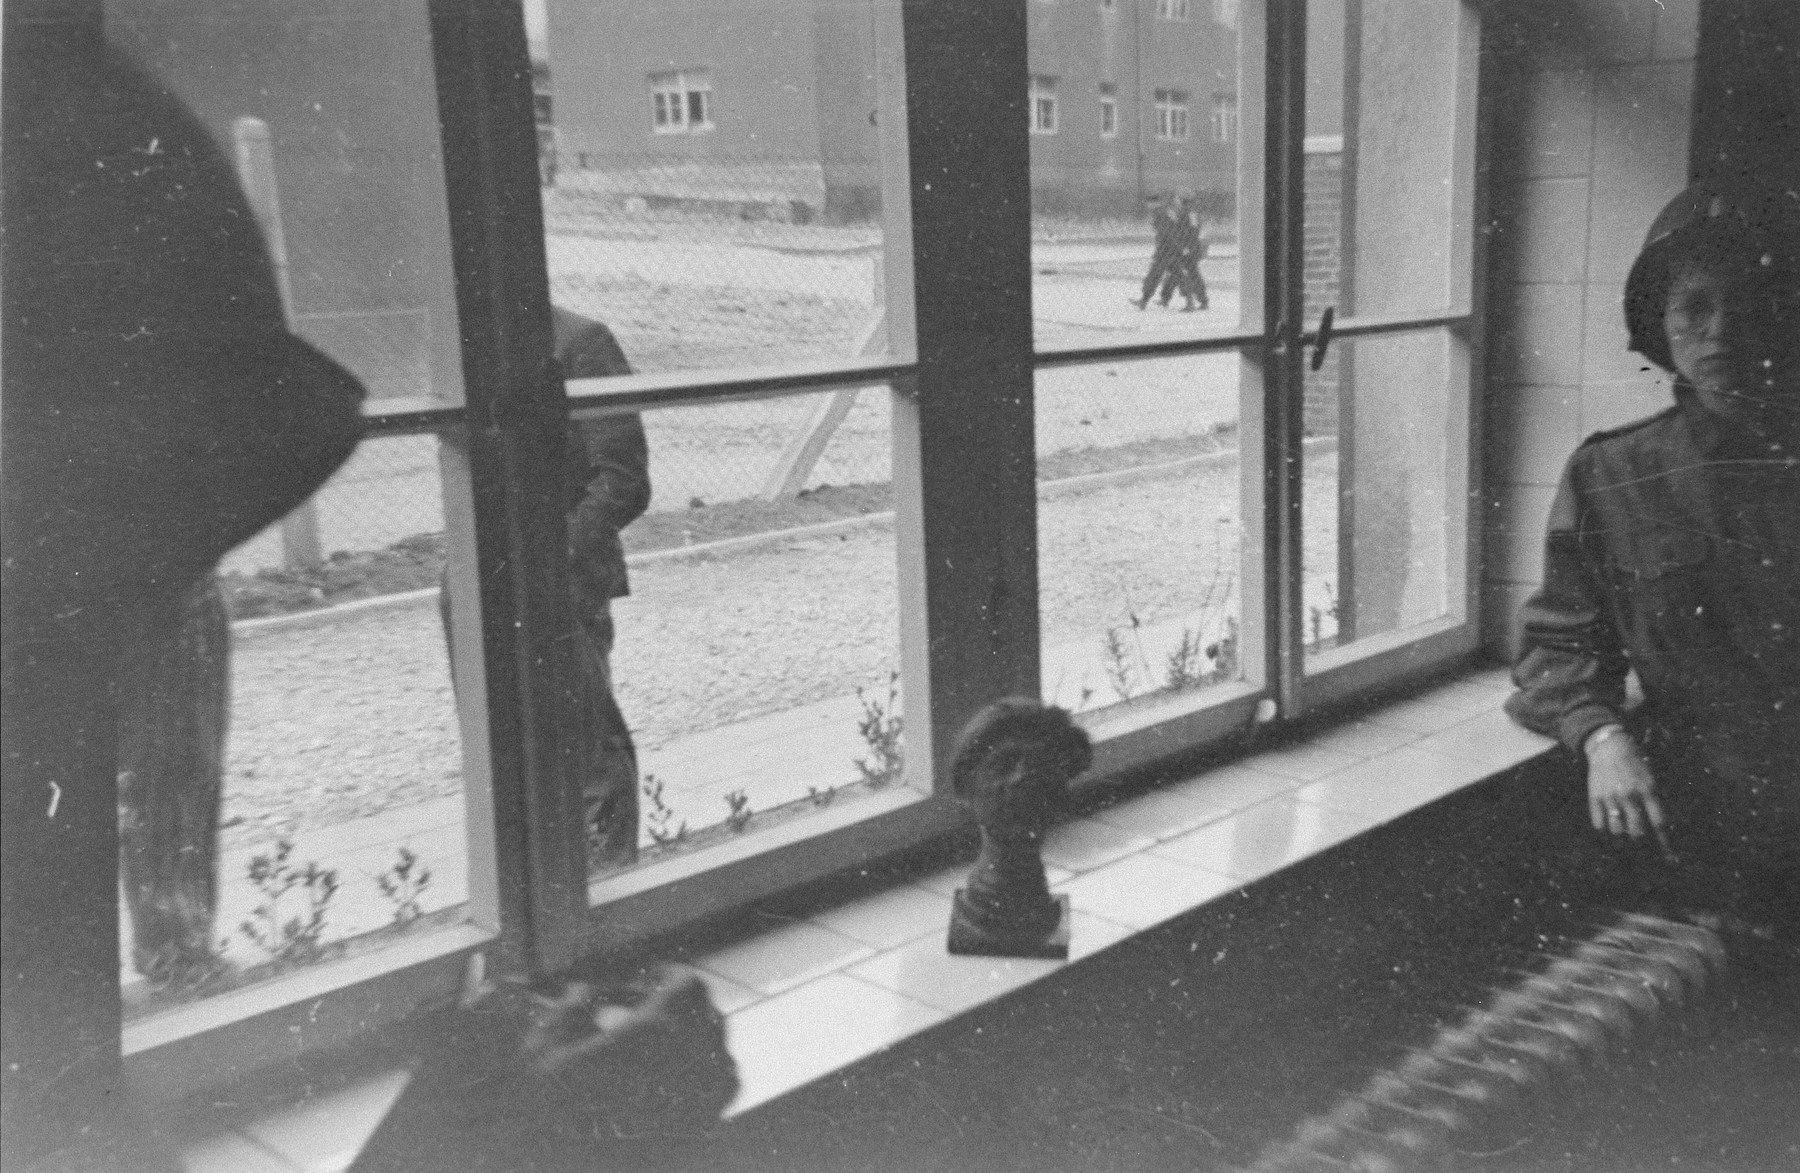 An American soldier stands next to a shrunken head perched on a windowsill in a building in Buchenwald.